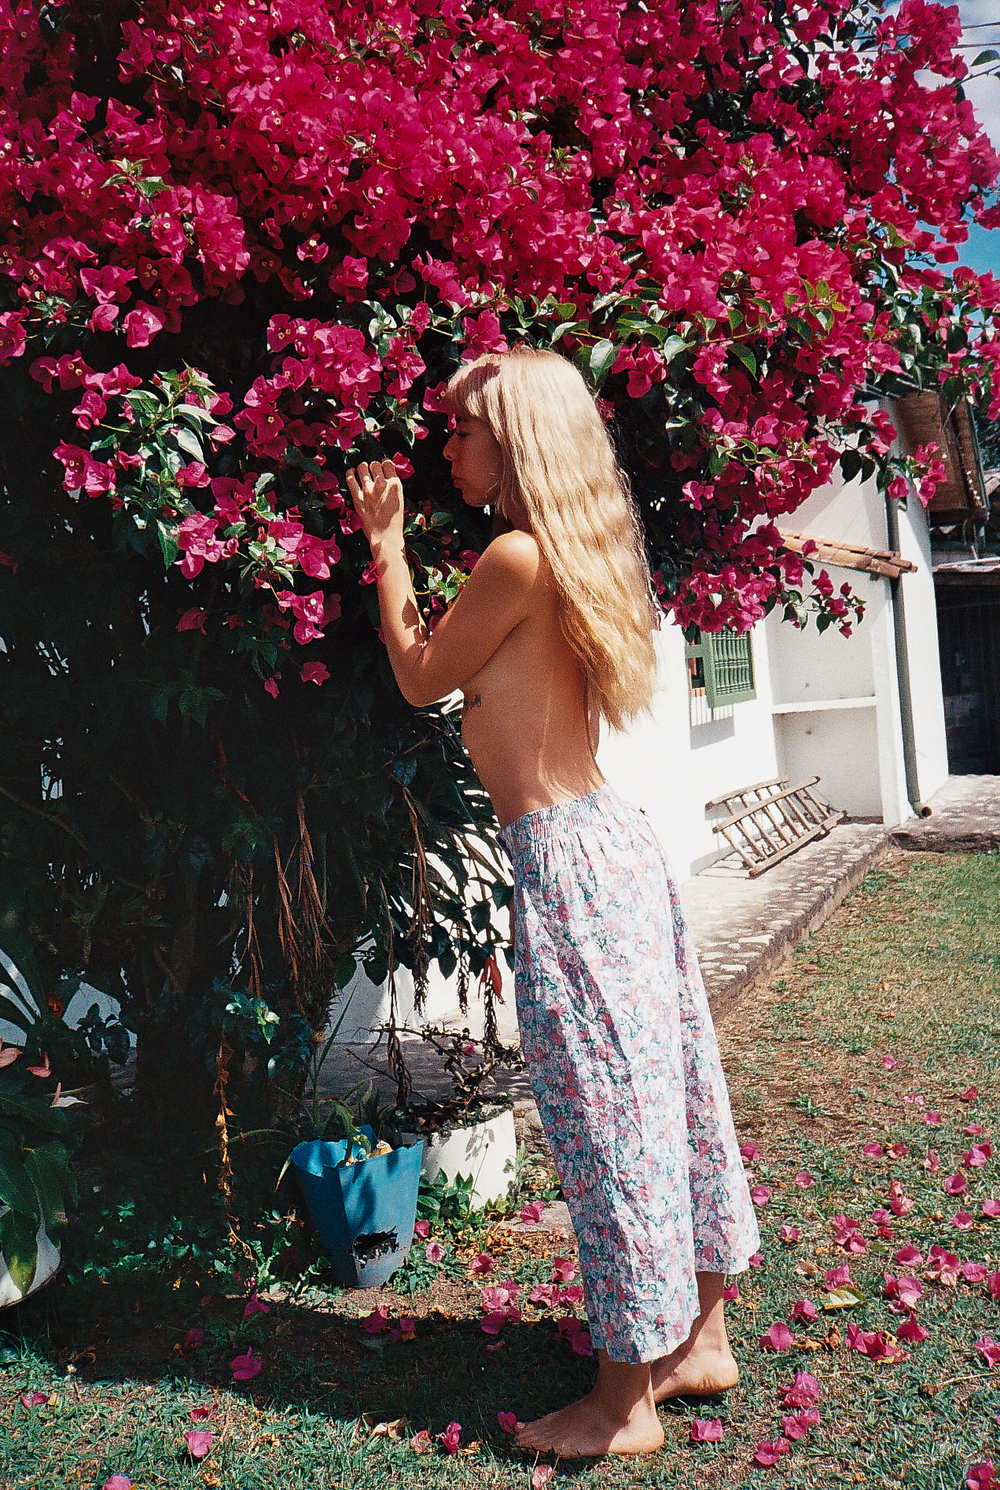 Later that afternoon it was so hot...but I was so free and happy!! speaking with the flowers as per usual